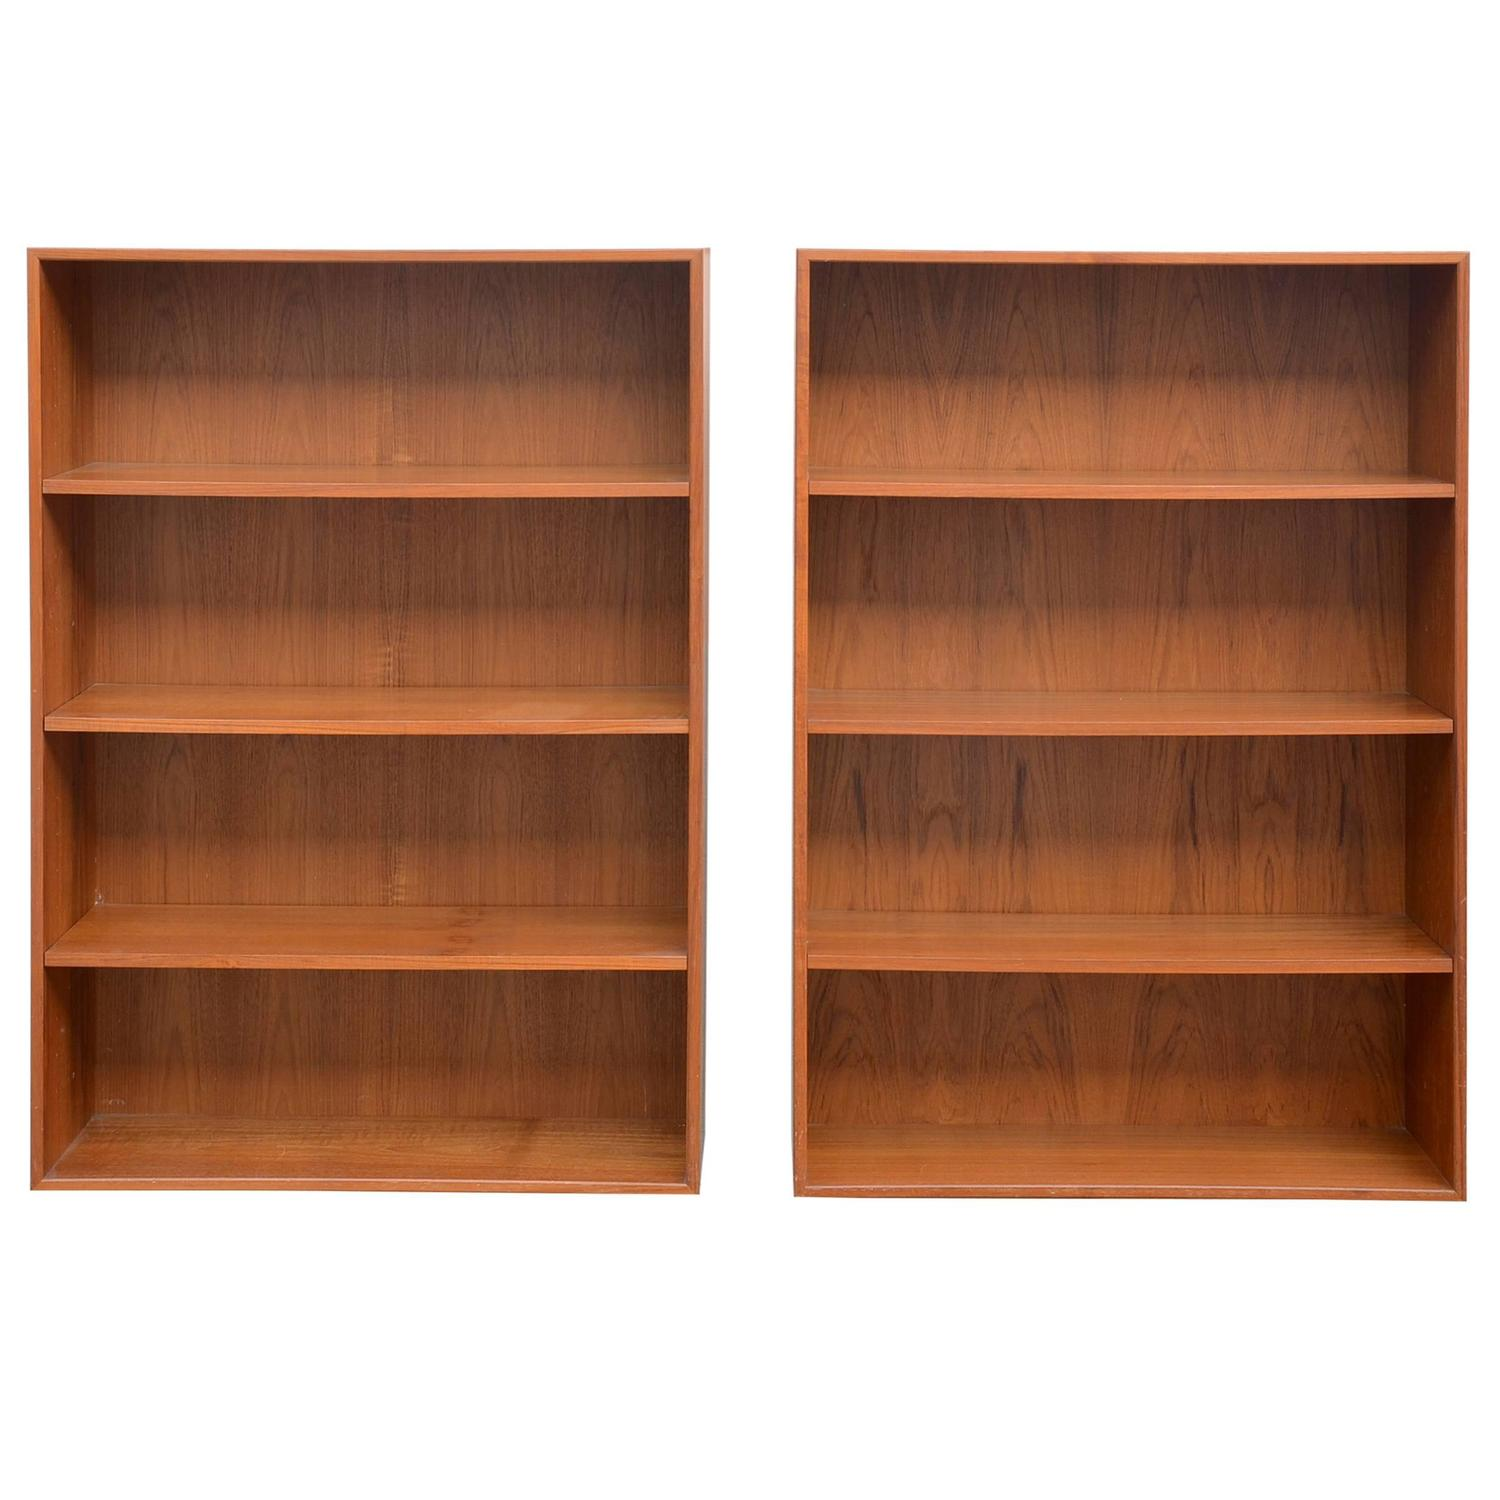 Pair of danish teak modern floating wall shelves or nightstands pair of minimalistic hanging danish teak shelving units by dyrlund amipublicfo Images